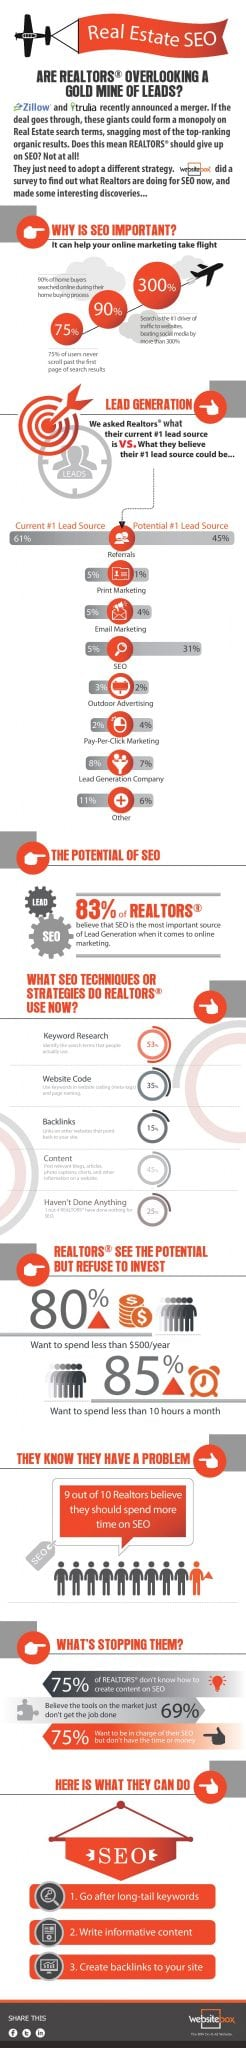 Infographic-SEO2 (4) (1)-page-001